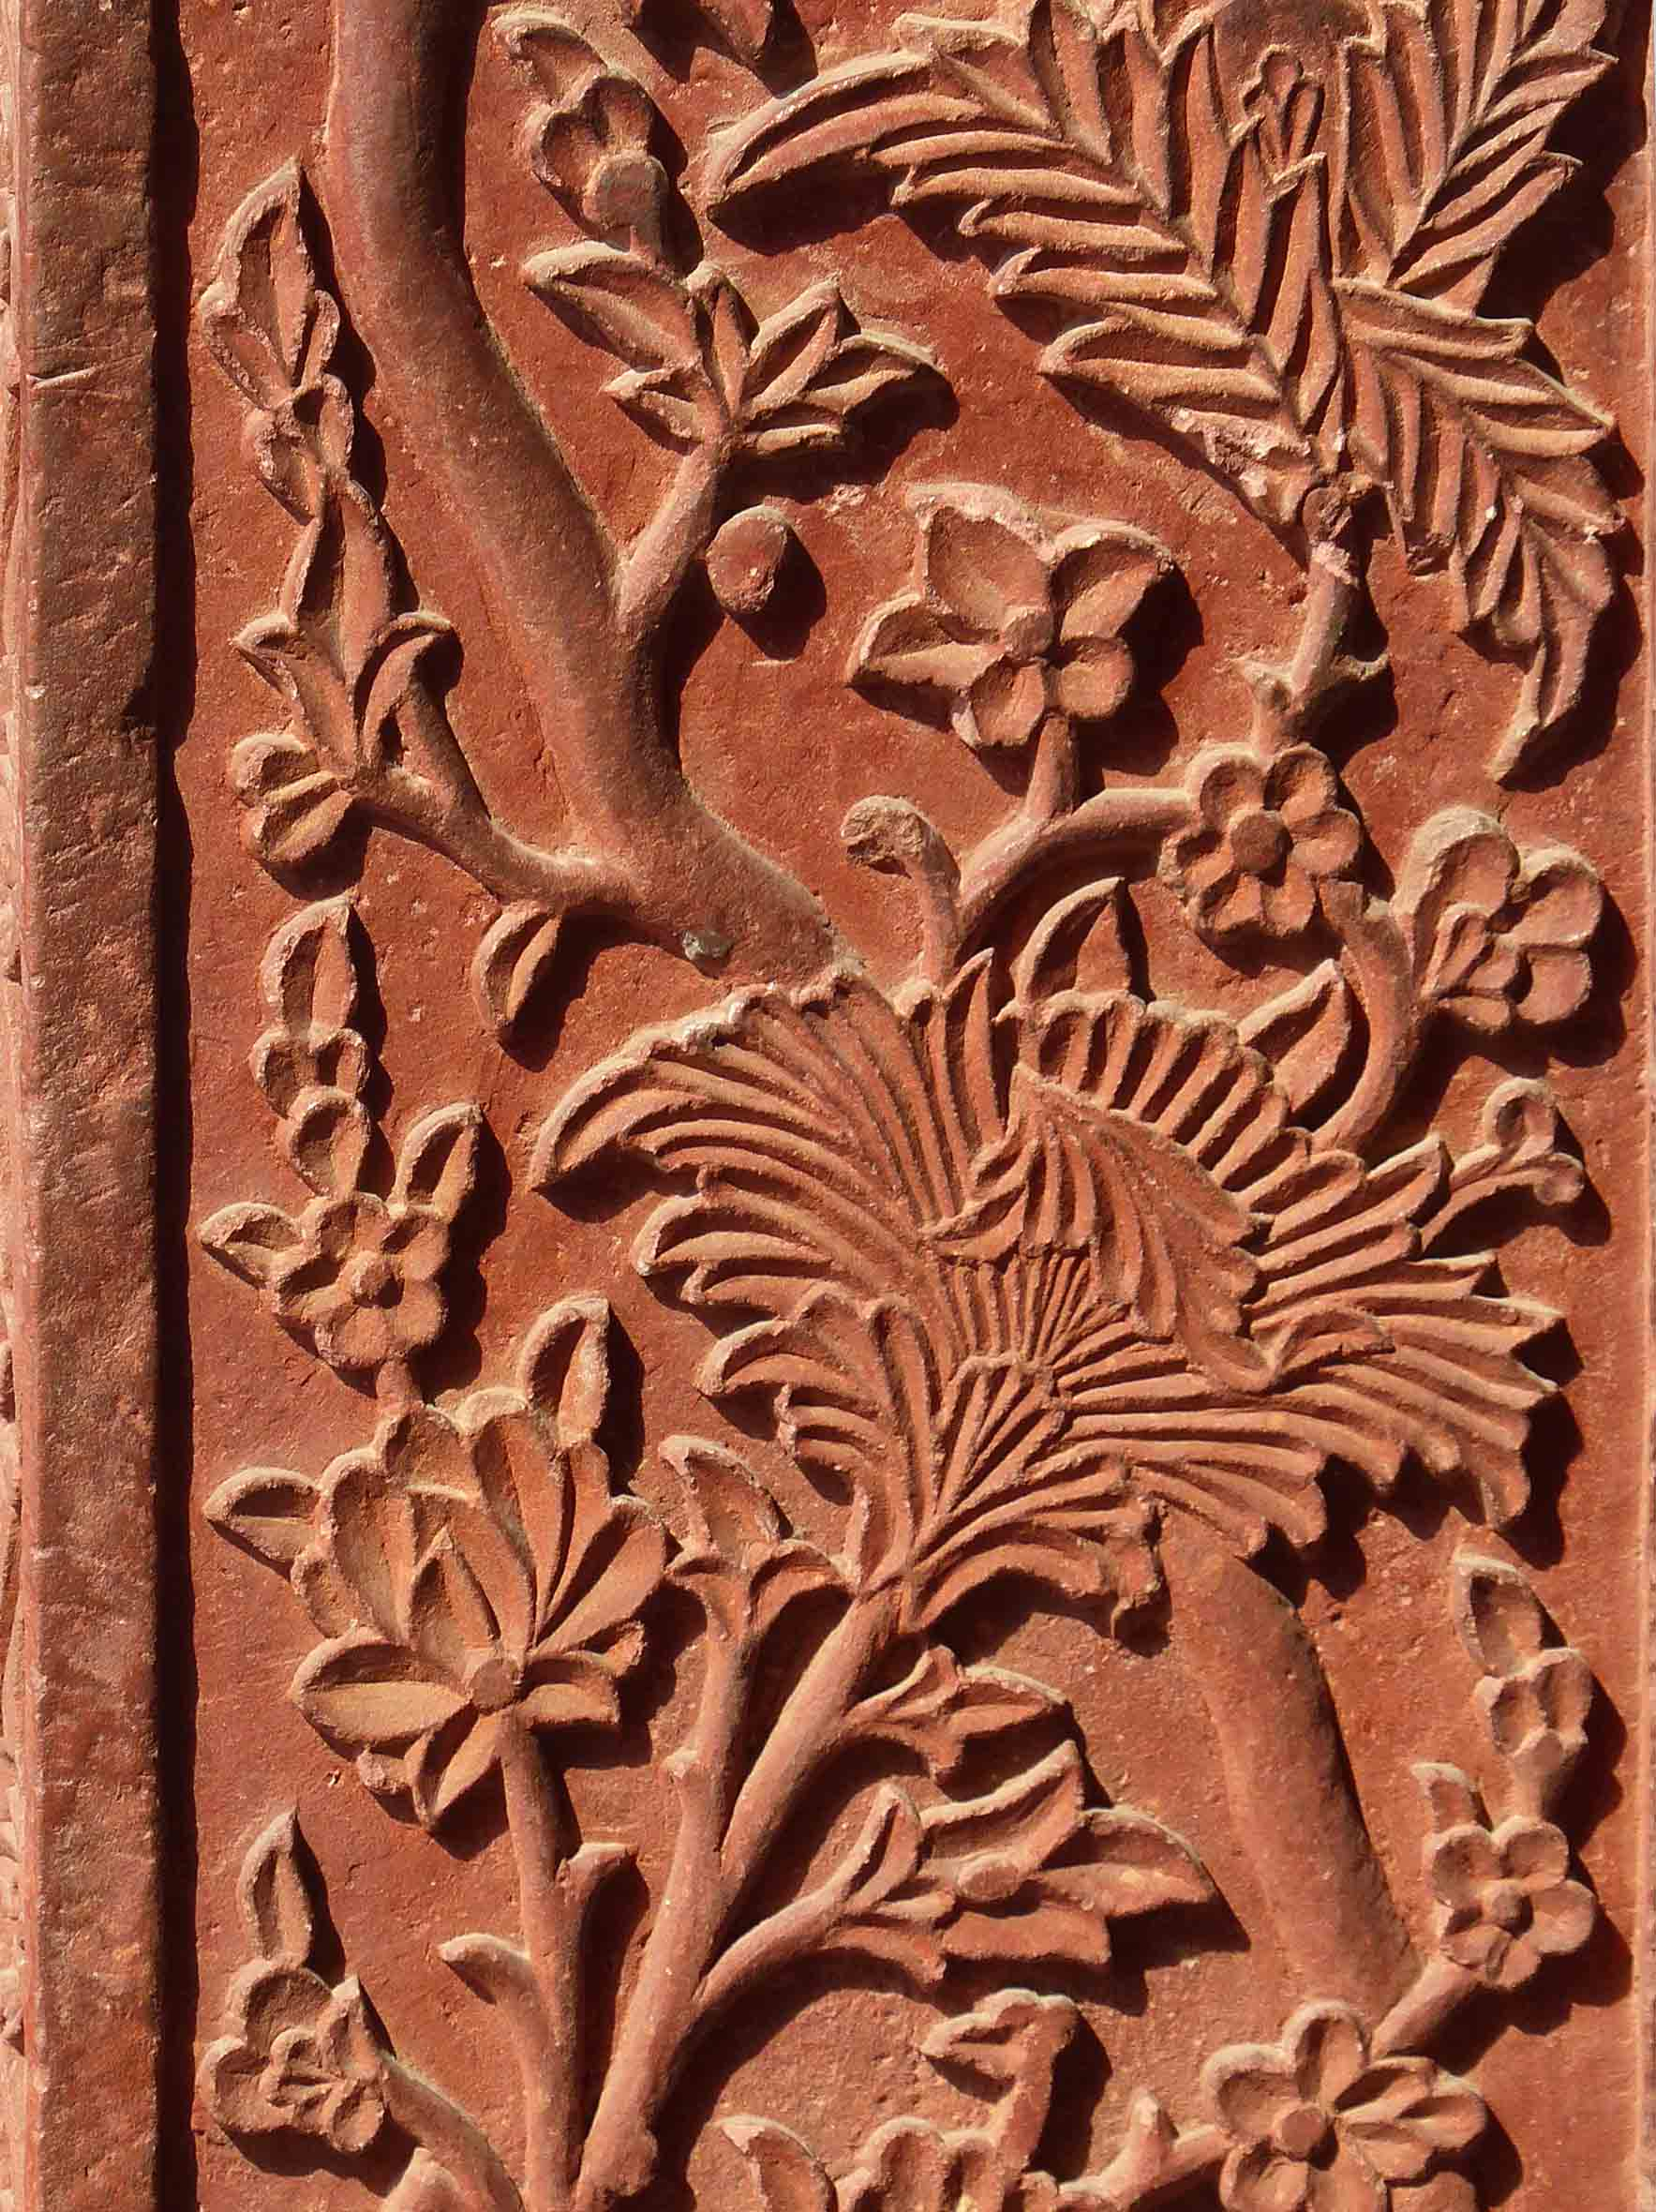 Red sandstone carving of leaves and flowers